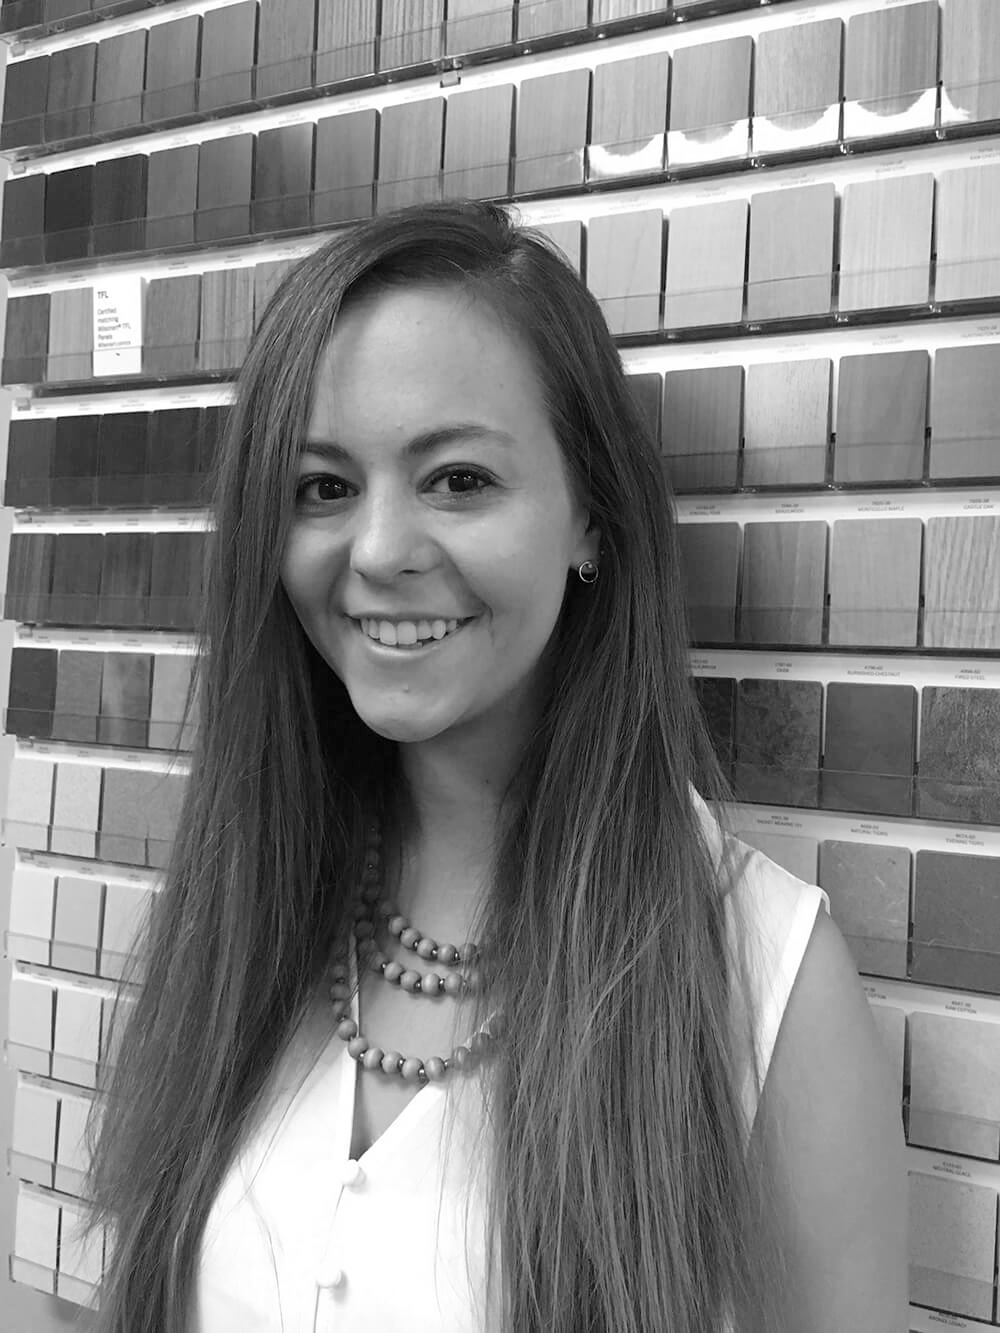 Amy Harmon - Amy comes to us from the Hospitality Design industry after graduating with her Bachelors of Interior Design from Georgia Southern University. Go Eagles! Her swank style and dedication can be seen in all of her projects.